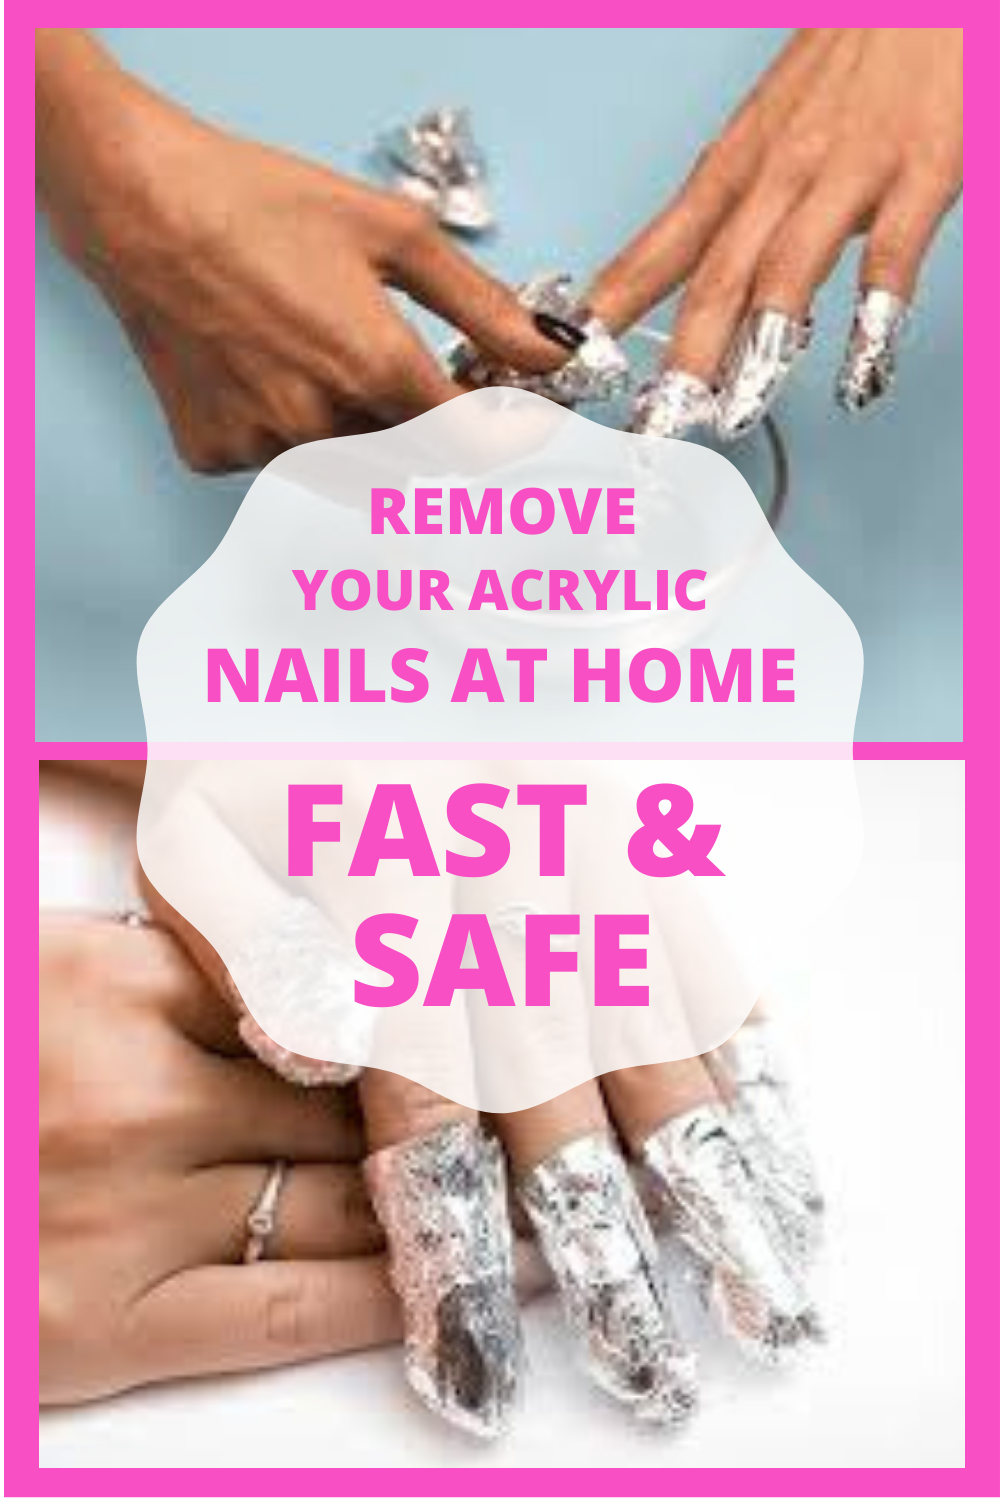 How To Remove Acrylic Nails Fast Safe With And Without Acetone In 2020 Acrylic Nails At Home Take Off Acrylic Nails Nails At Home